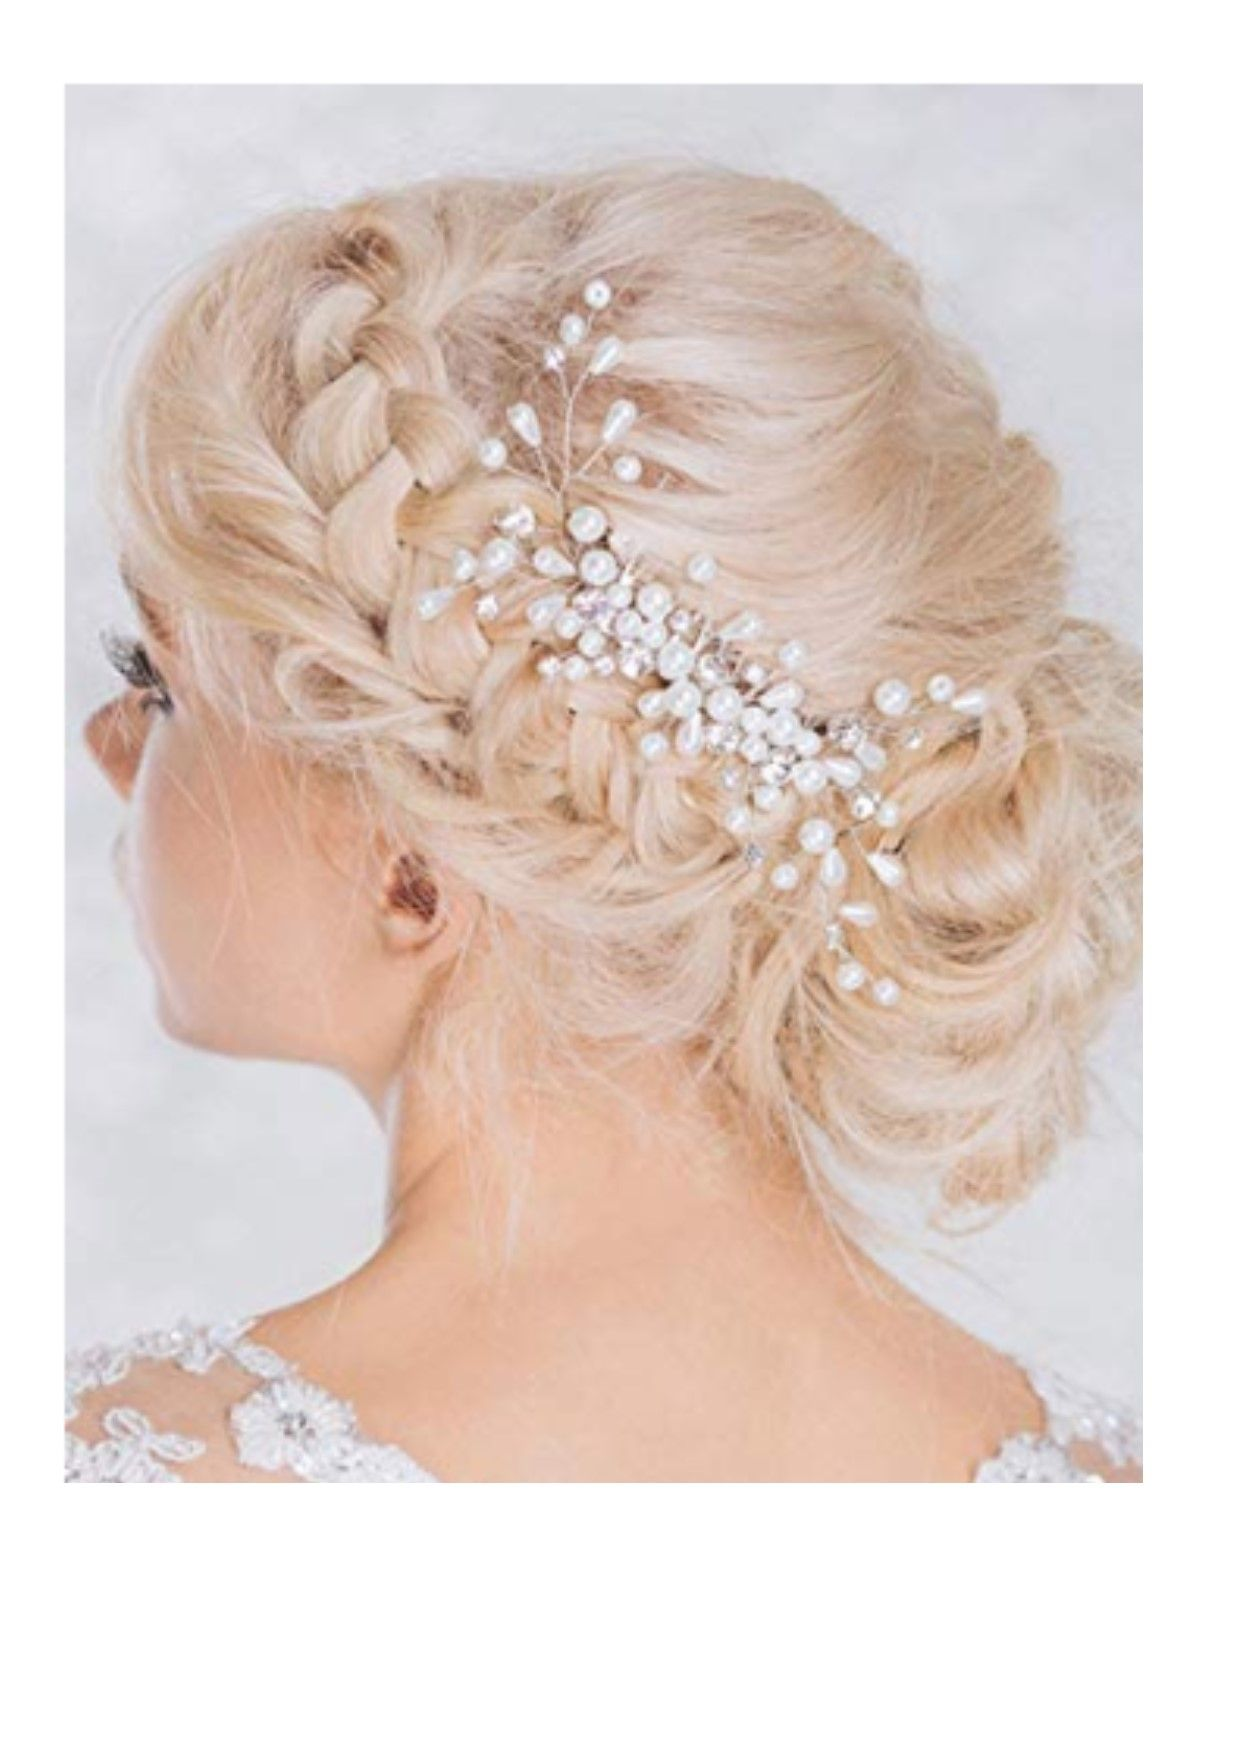 aukmla bridal bling bling headpiece, wedding hair combs with